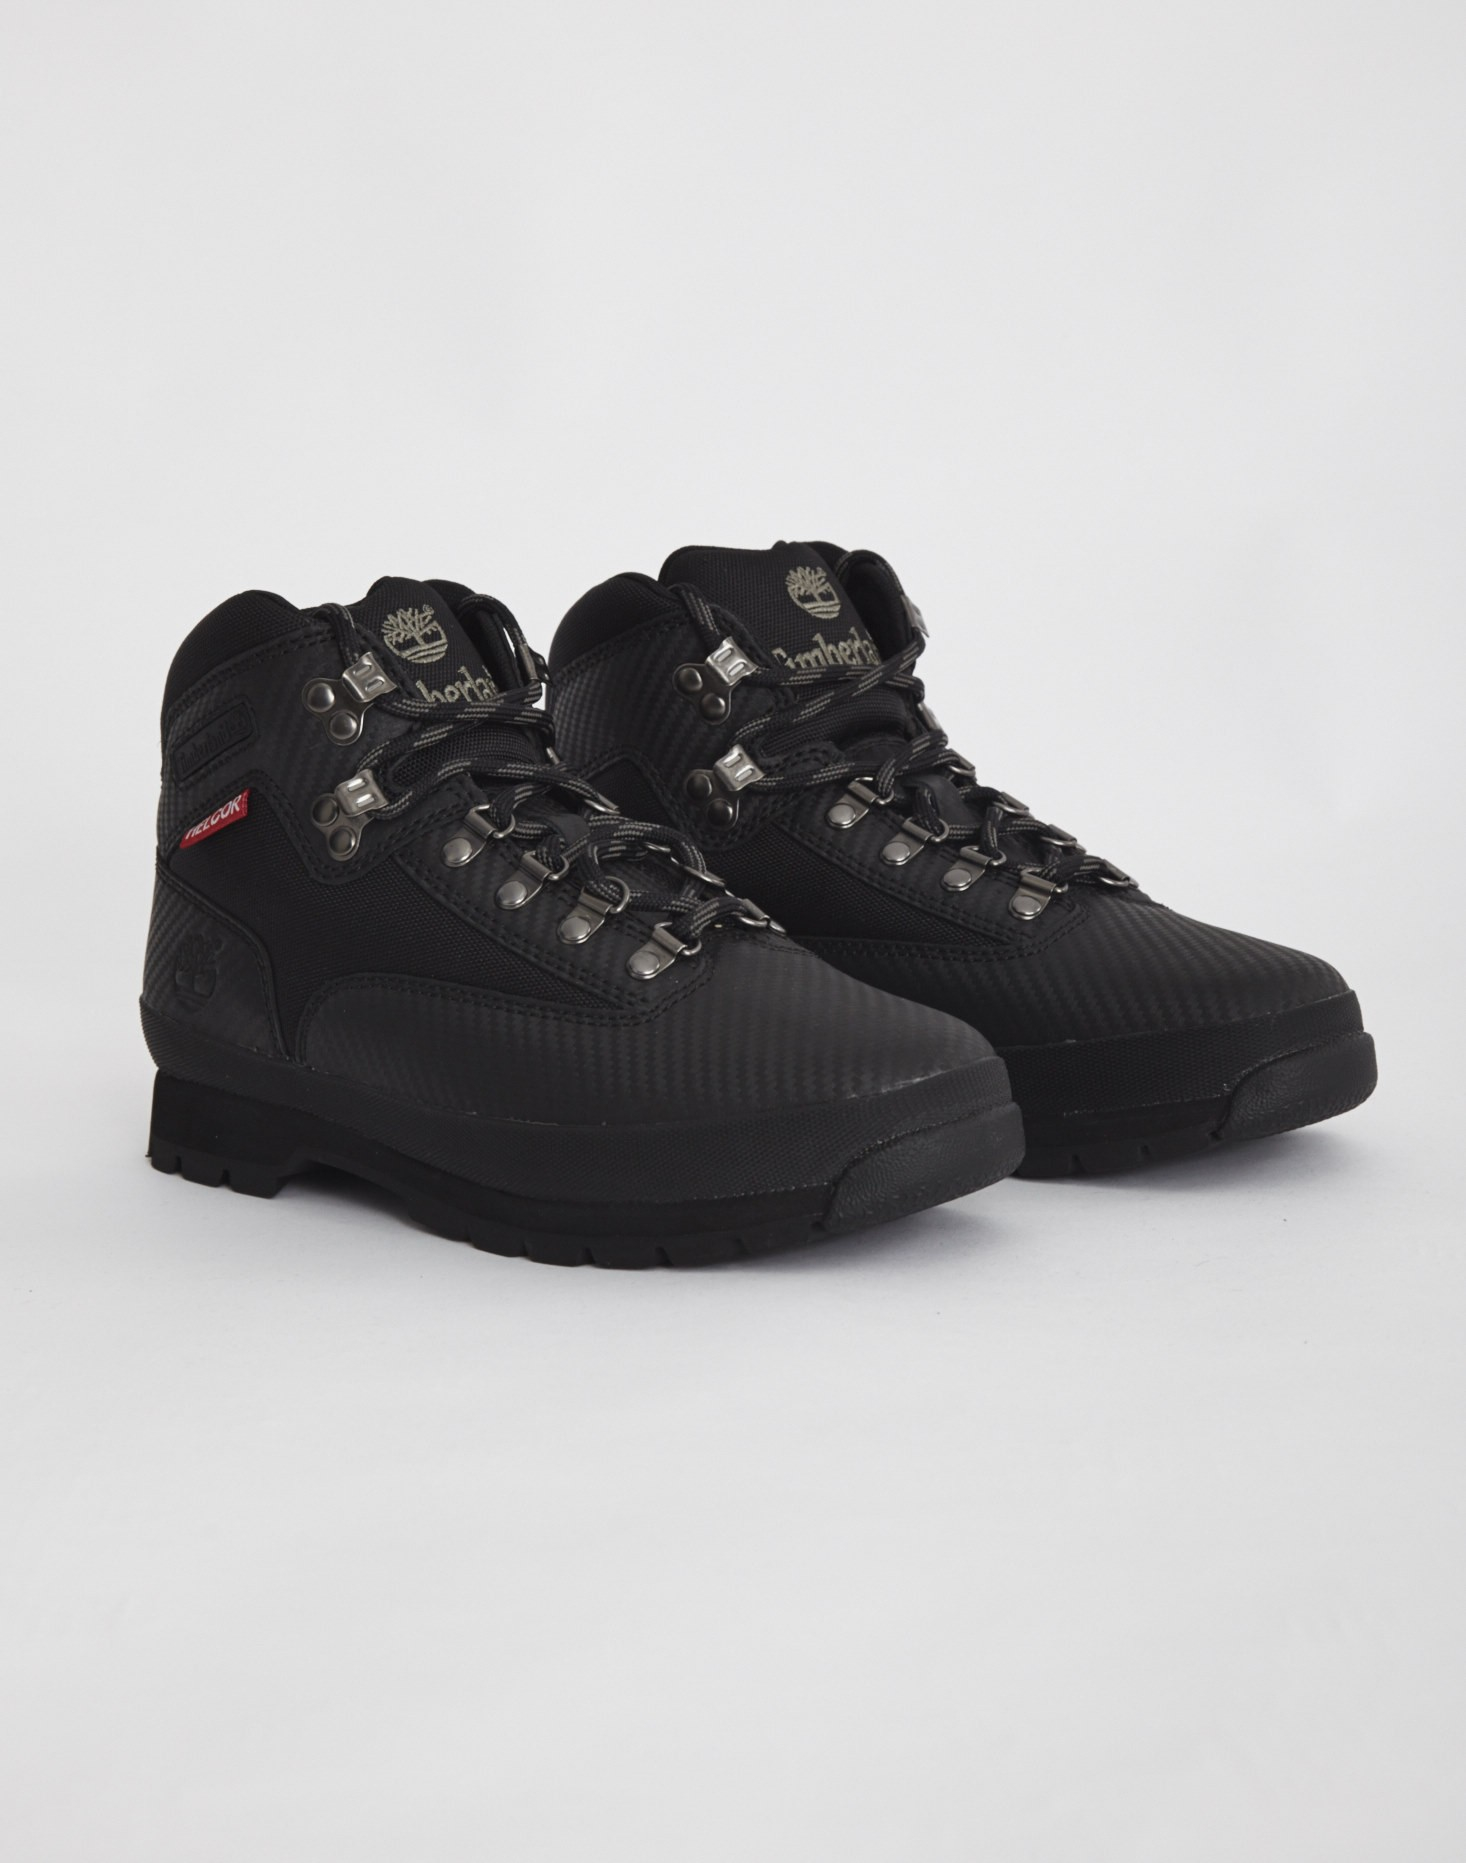 4660c65e6d2 Timberland Euro Hiker Mid Fabric And Leather Boot Black in Black for ...